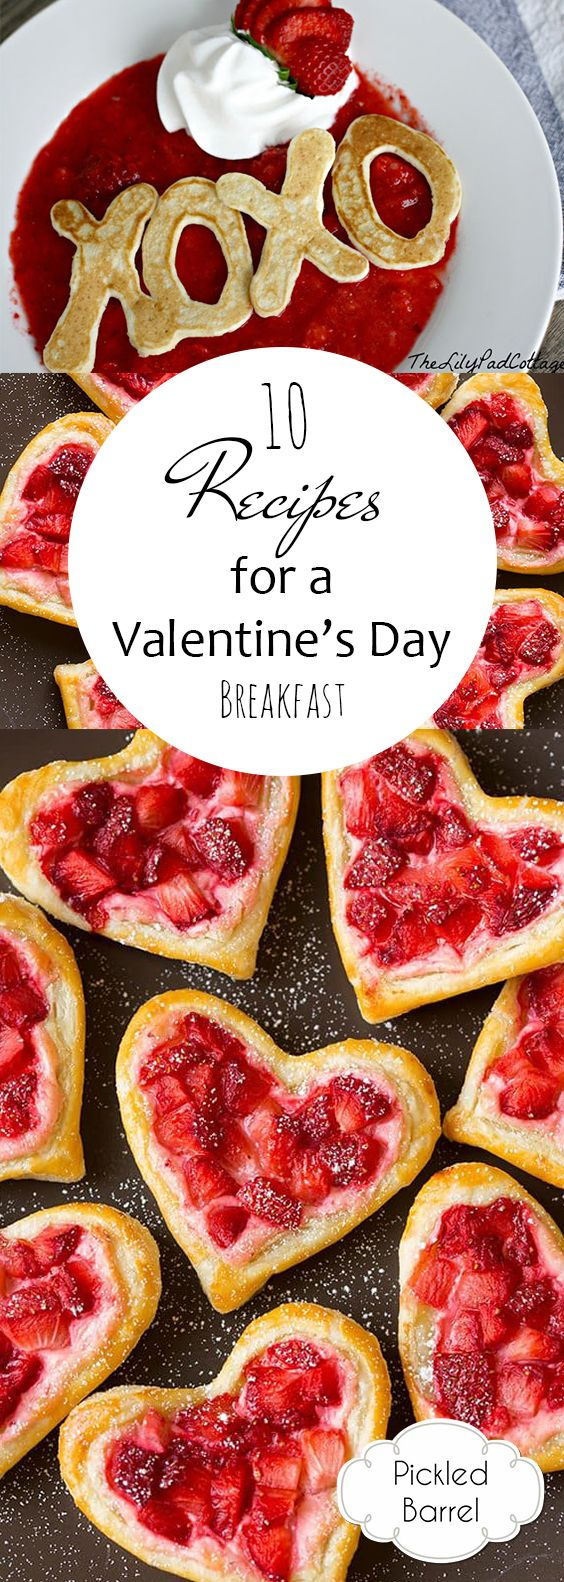 10 Recipes for a Valentines Day Breakfast – Pickled Barrel